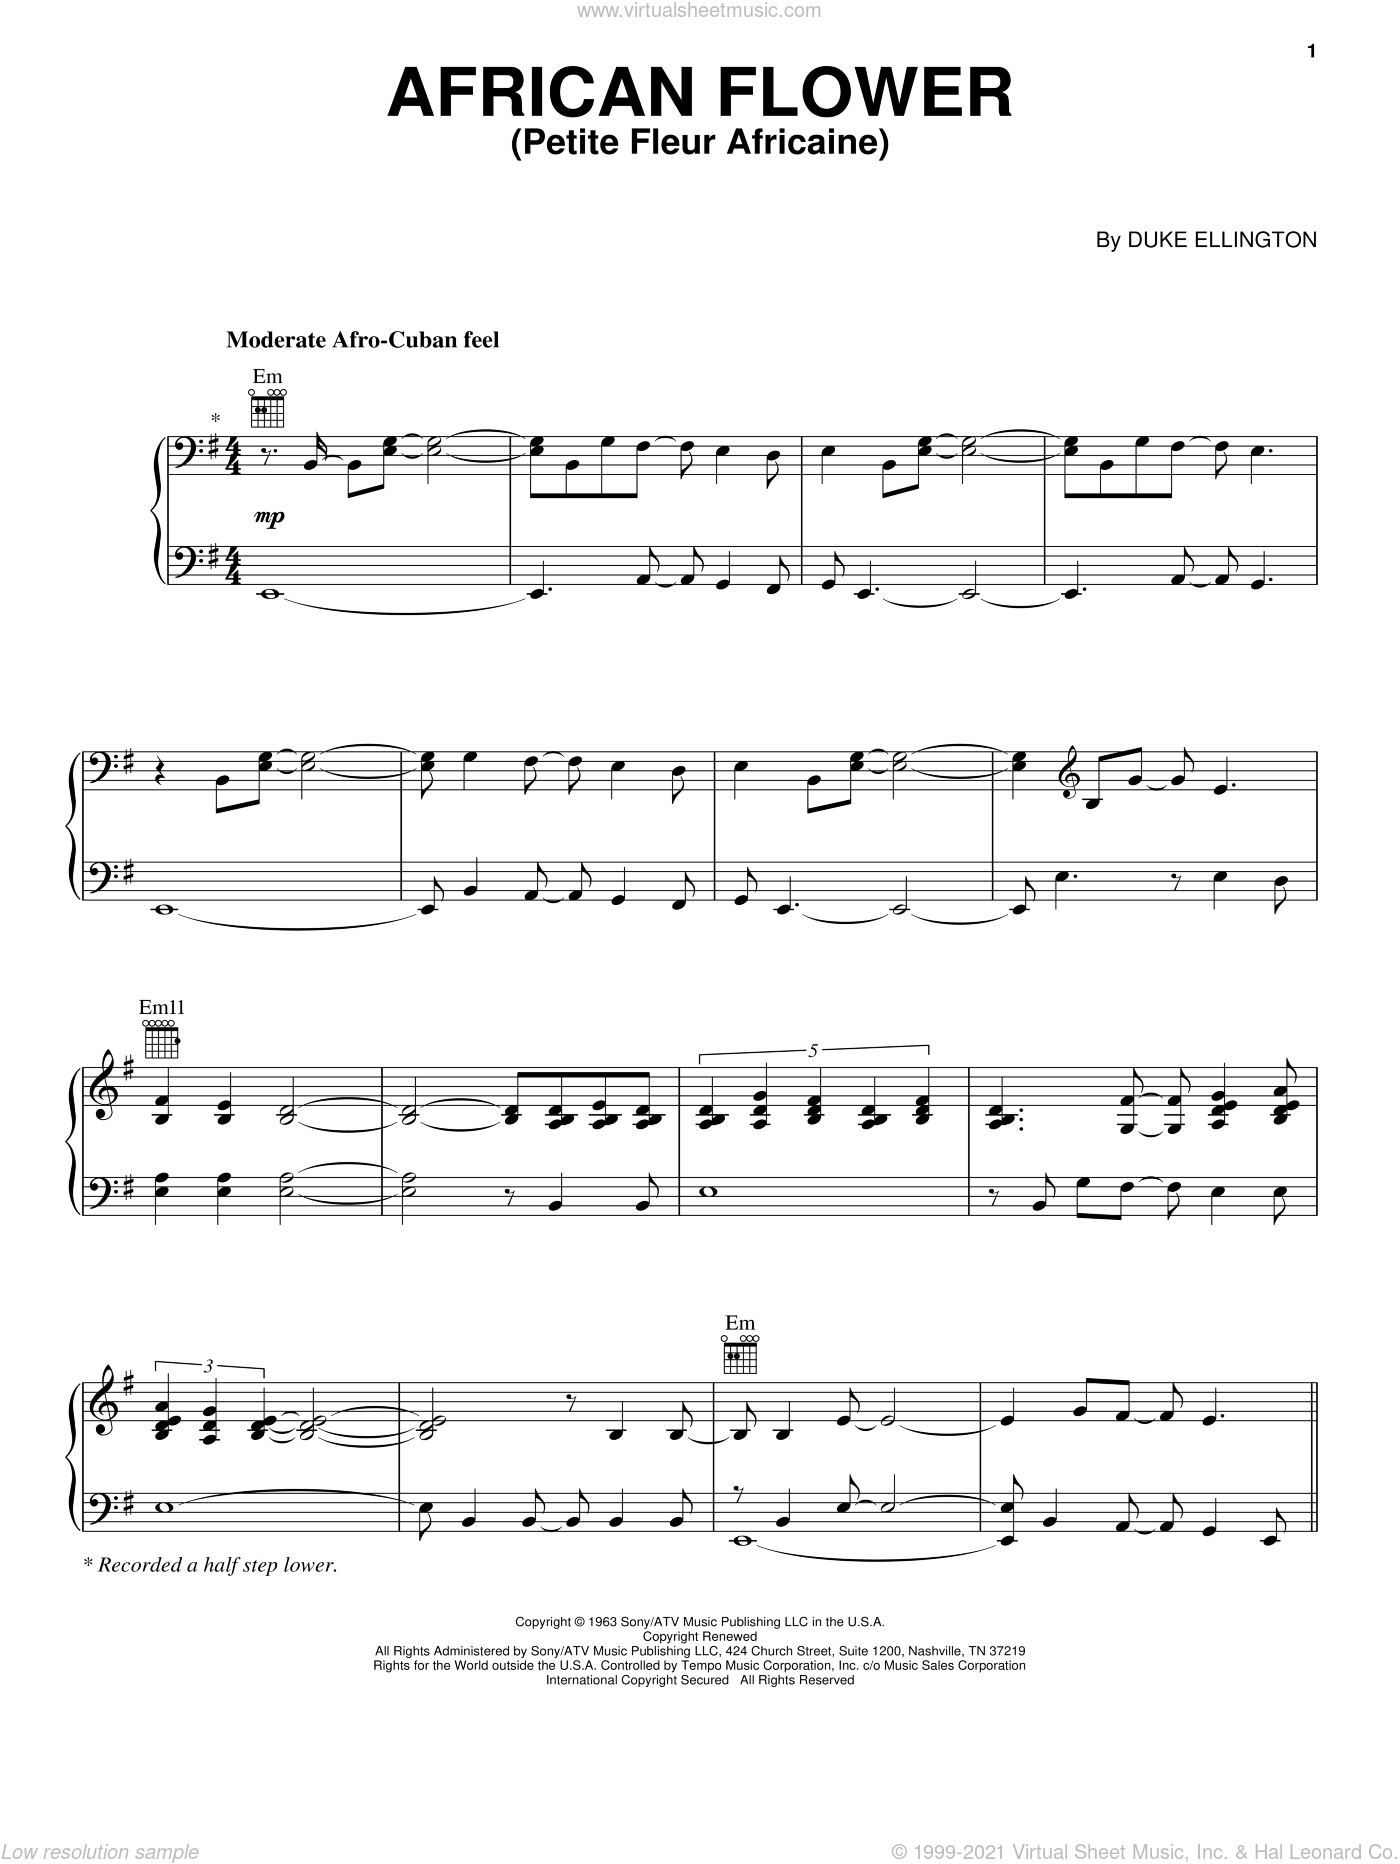 African Flower (Petite Fleur Africaine) sheet music for voice, piano or guitar by Norah Jones and Duke Ellington, intermediate skill level